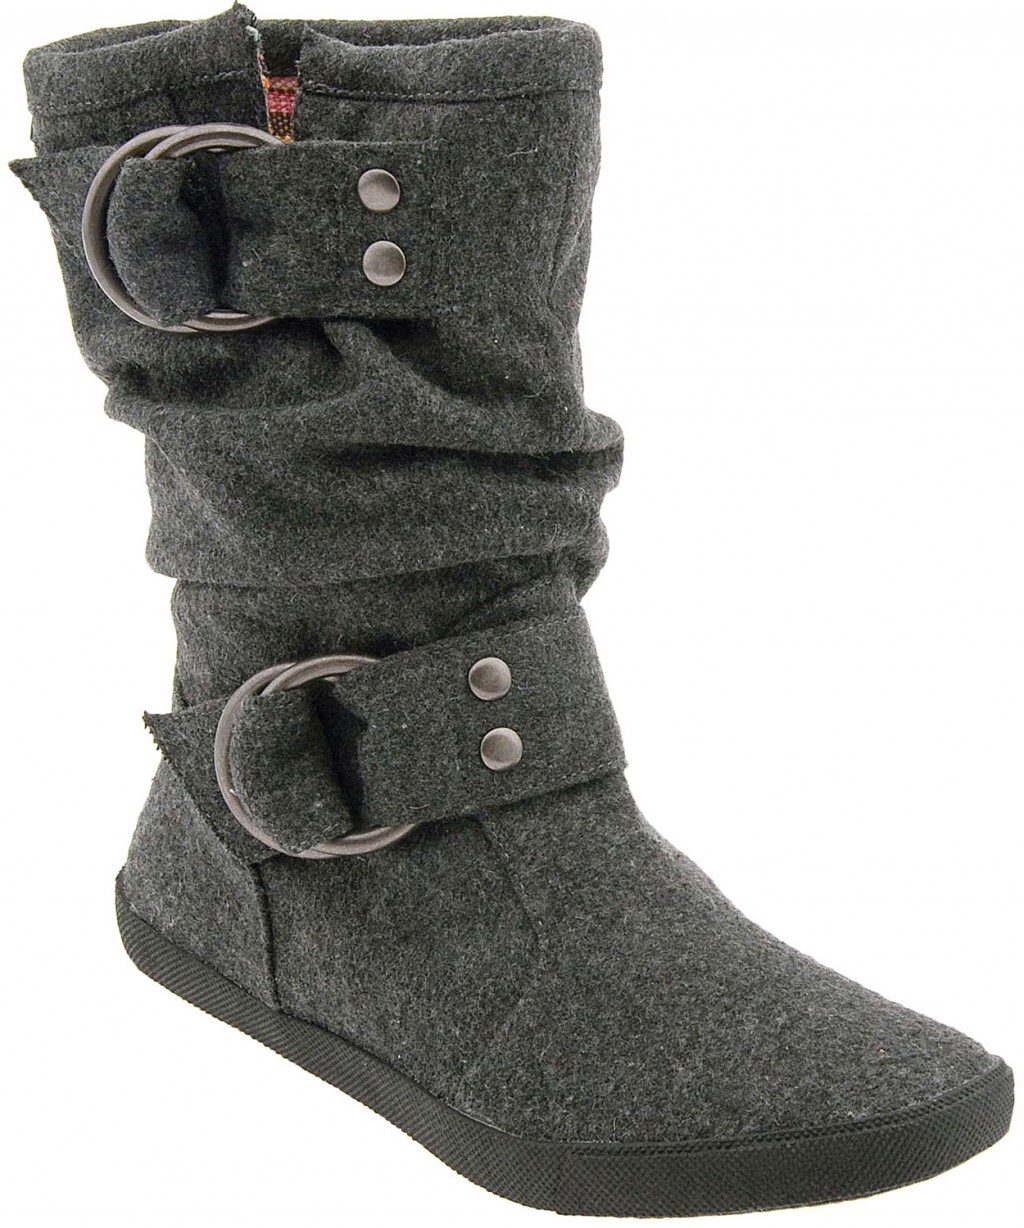 Shoes , Charming Winter Boots Product Picture : Gorgeous Grey  Best Winter Boots